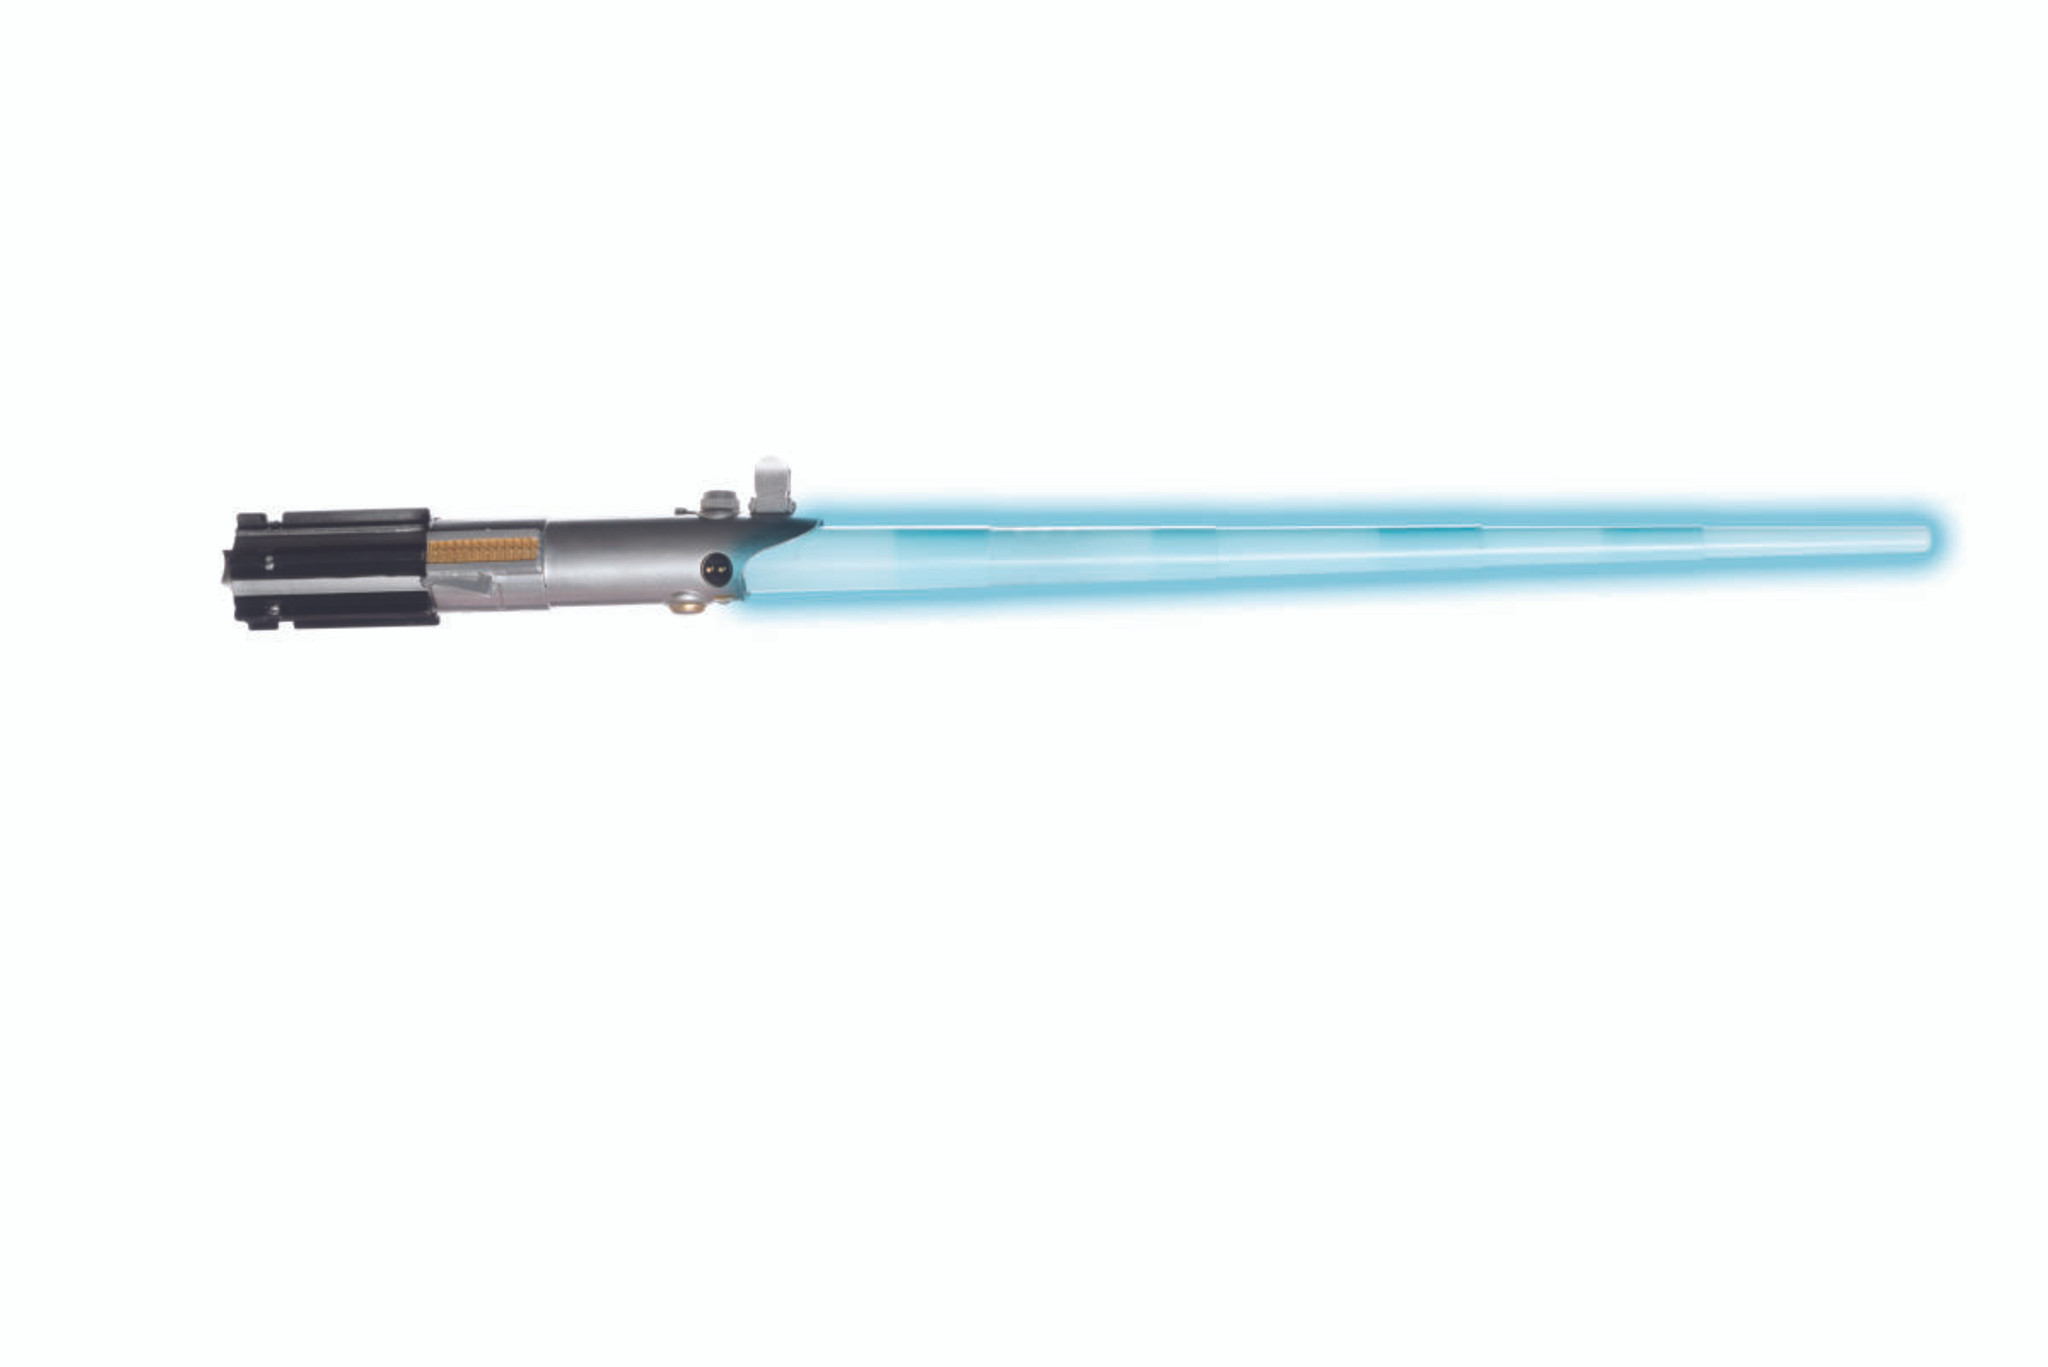 Star Wars The Rise Of Skywalker Rey Lightsaber Imaginations Costume Dance